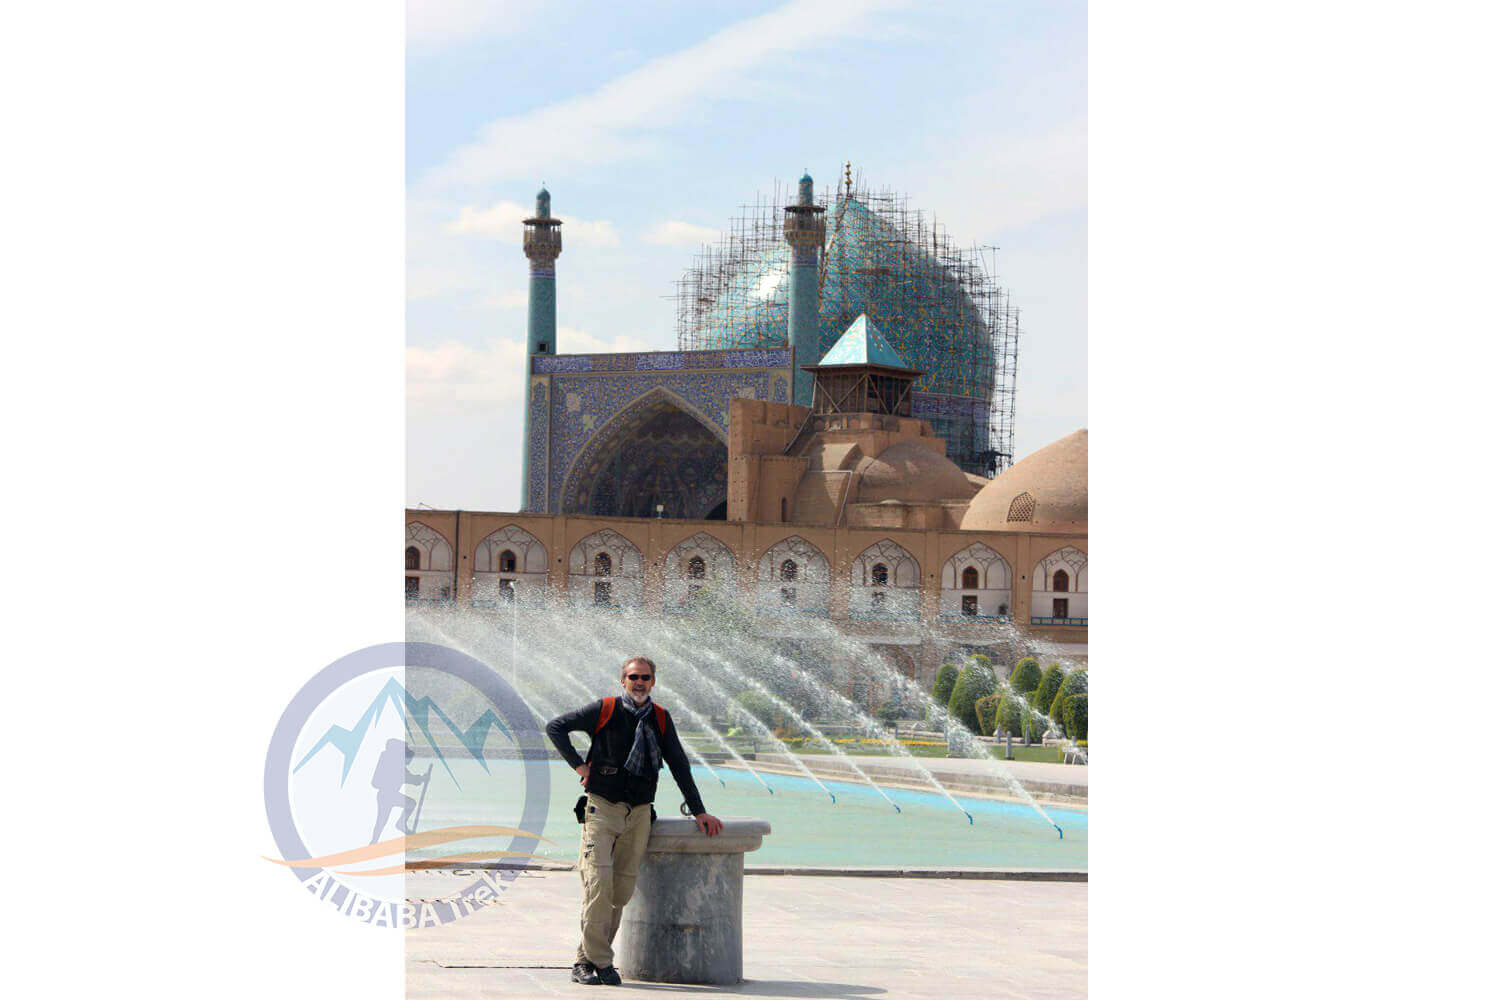 Alibabatrek iran deserts and culture tour Naqsh-e Jahan Square